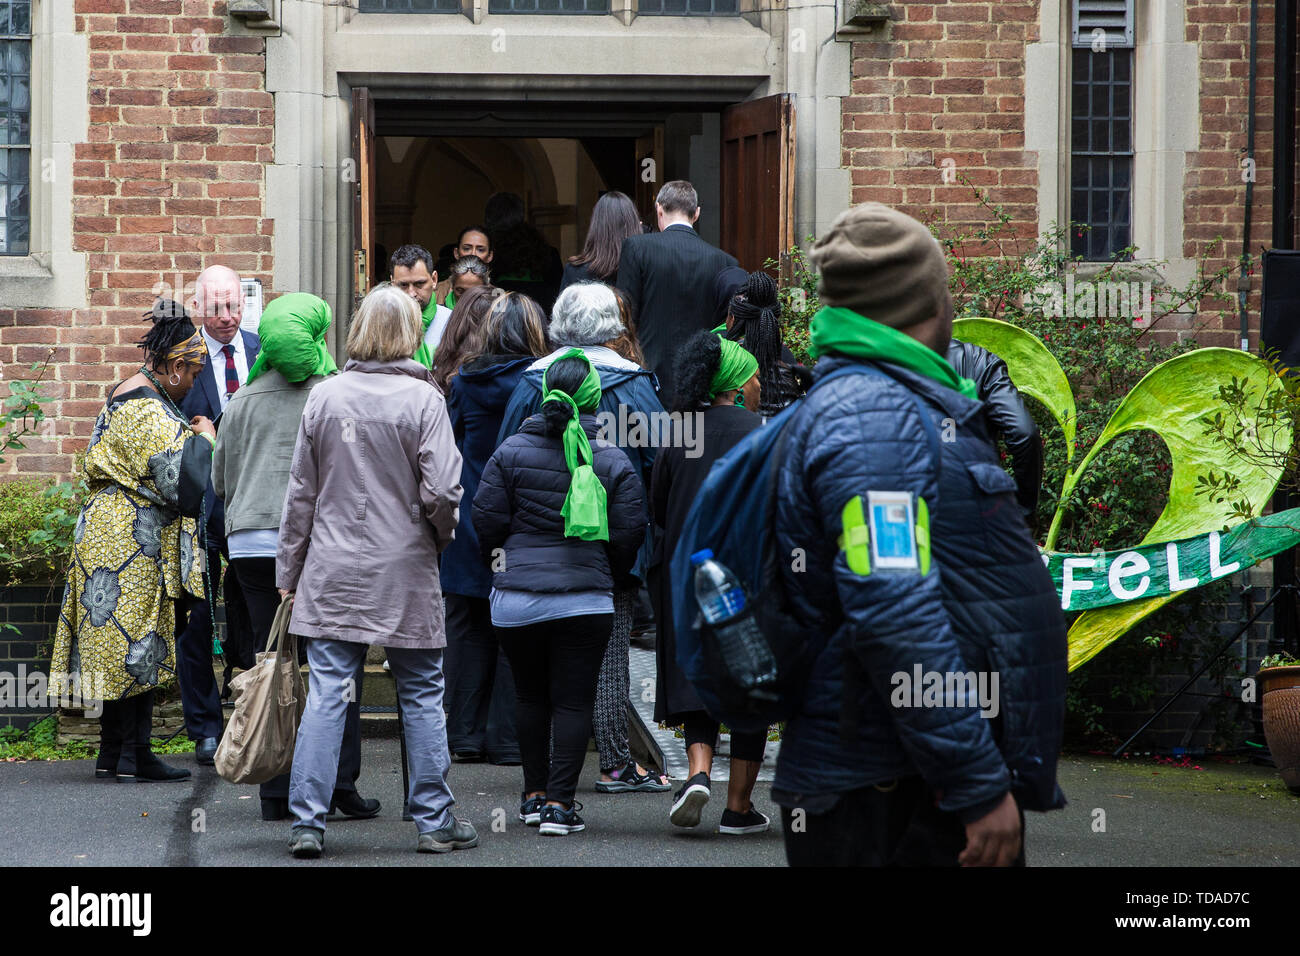 London, UK. 14 June, 2019. Matt Wrack, General Secretary of the Fire Brigades Union, arrives to attend a memorial service at St Helen's Church to mark the second anniversary of the Grenfell Tower fire on 14th June 2017 in which at least 72 people died and over 70 were injured. Credit: Mark Kerrison/Alamy Live News - Stock Image